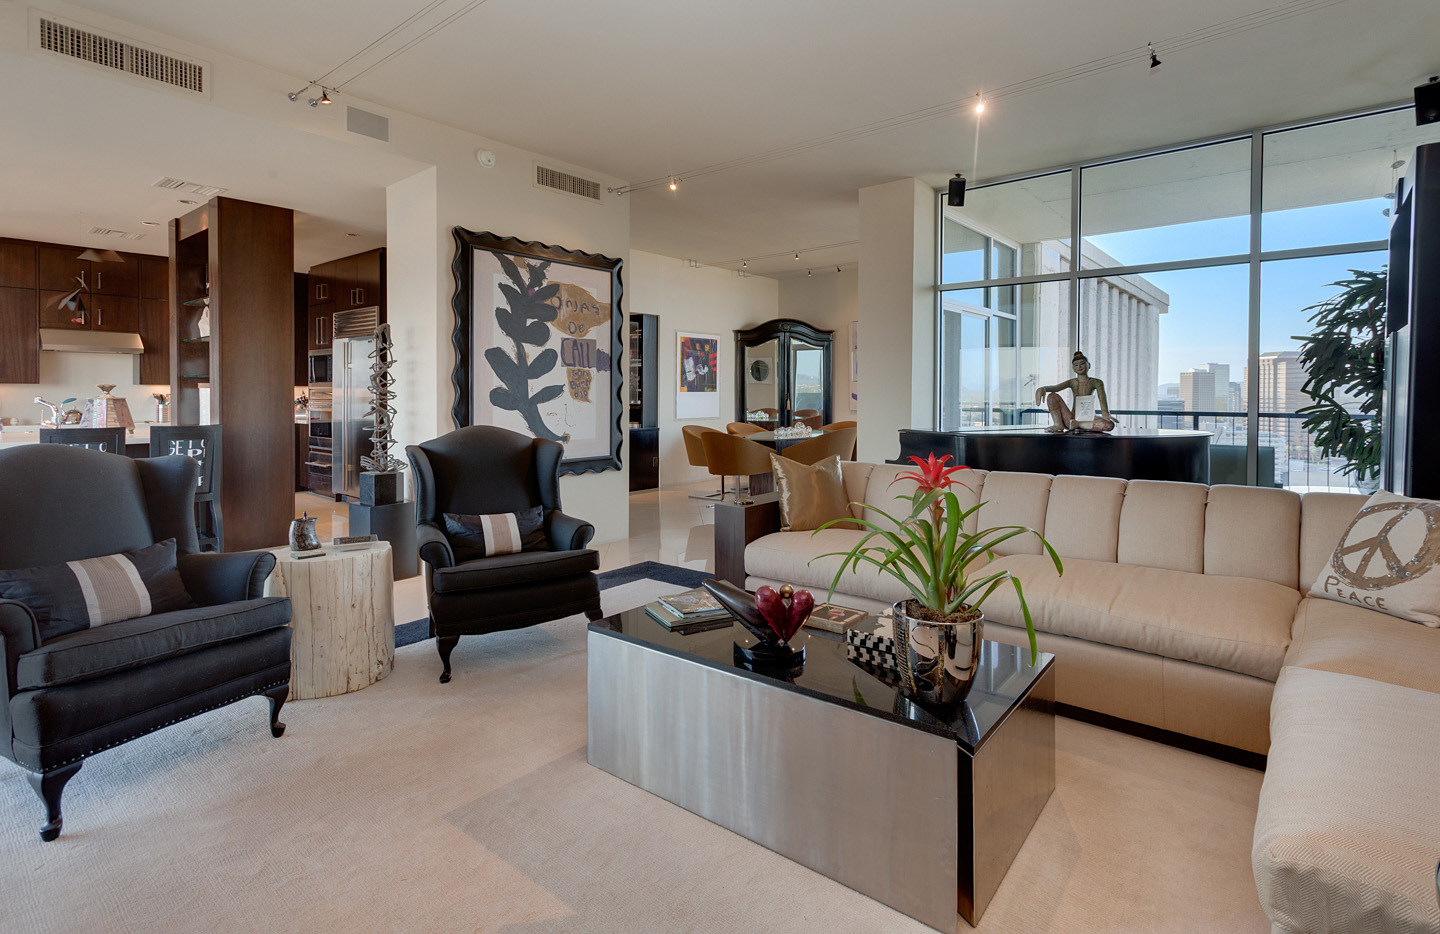 2323-N-Central-Ave-Phoenix-Downtown-Penthouse-41.jpg